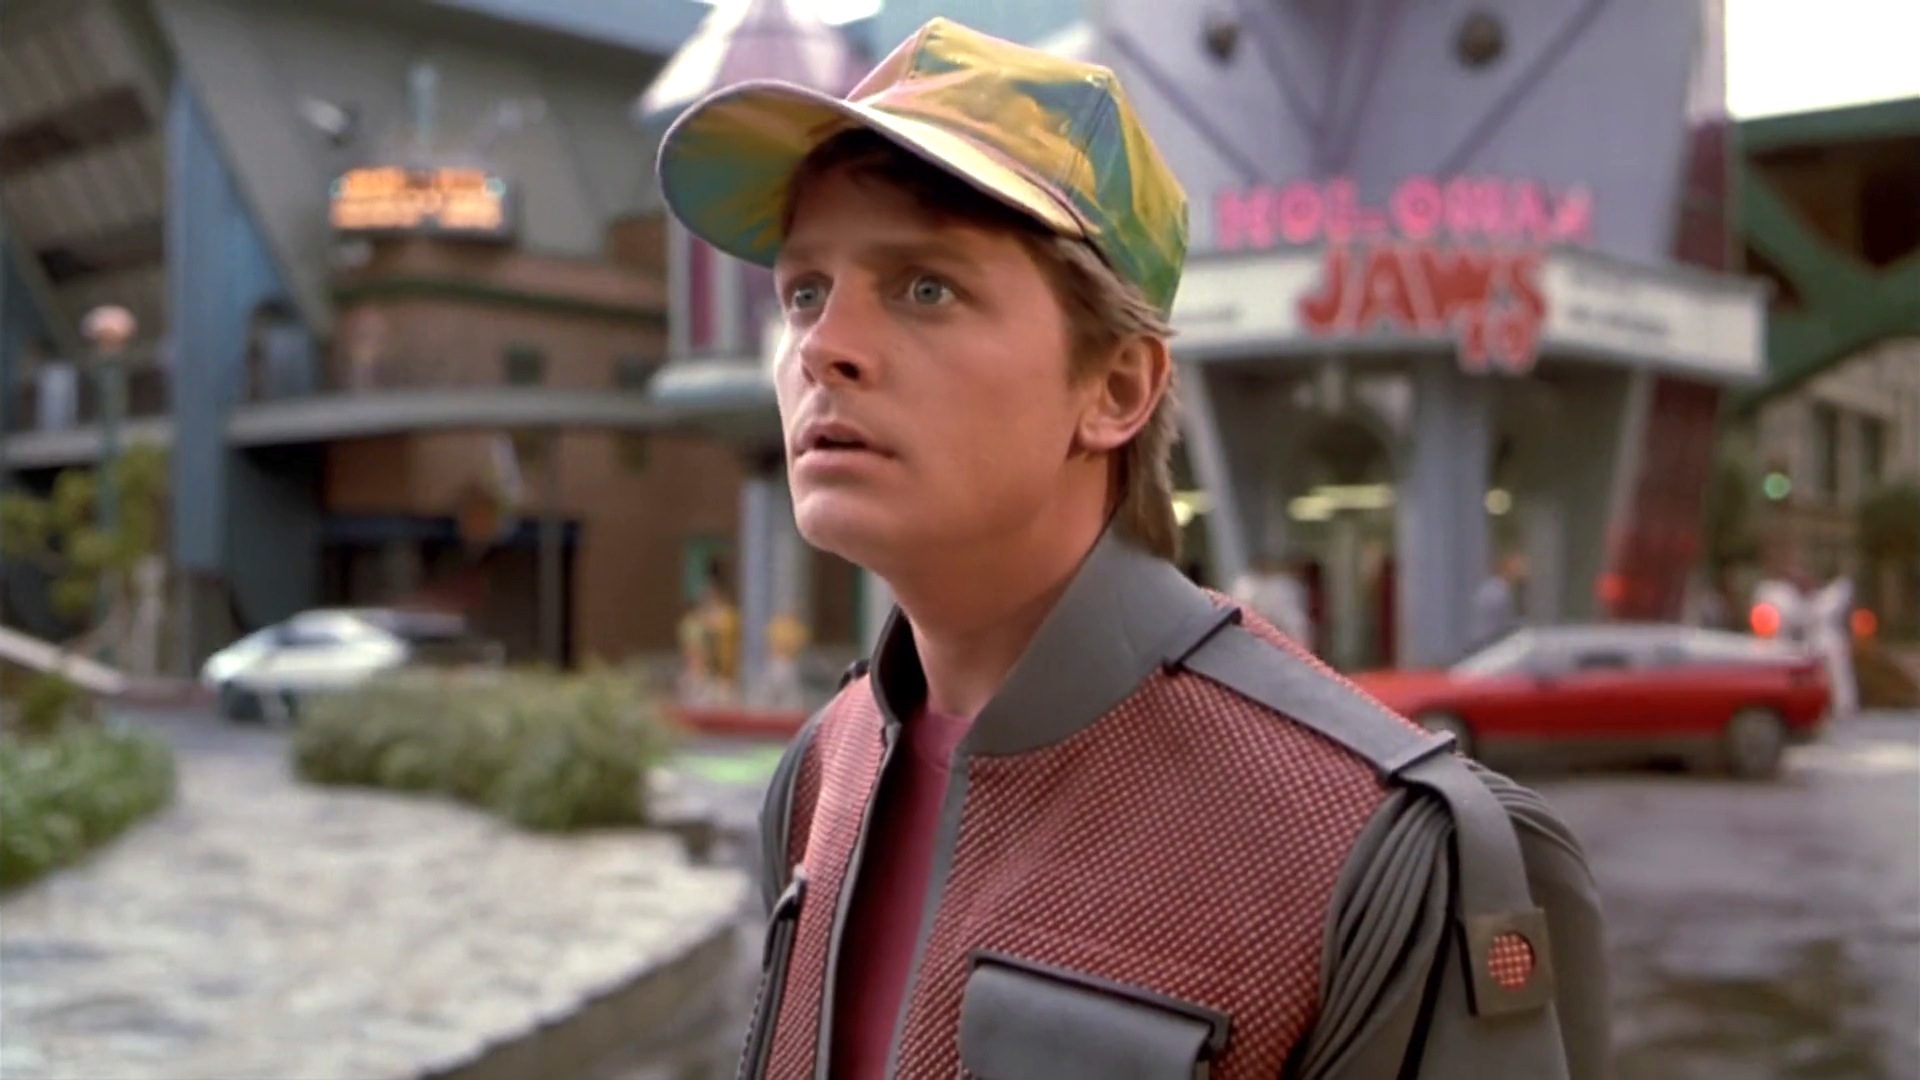 film-back_to_the_future_2-1989-marty_mcfly-michael_j_fox-accessories-hat.jpg